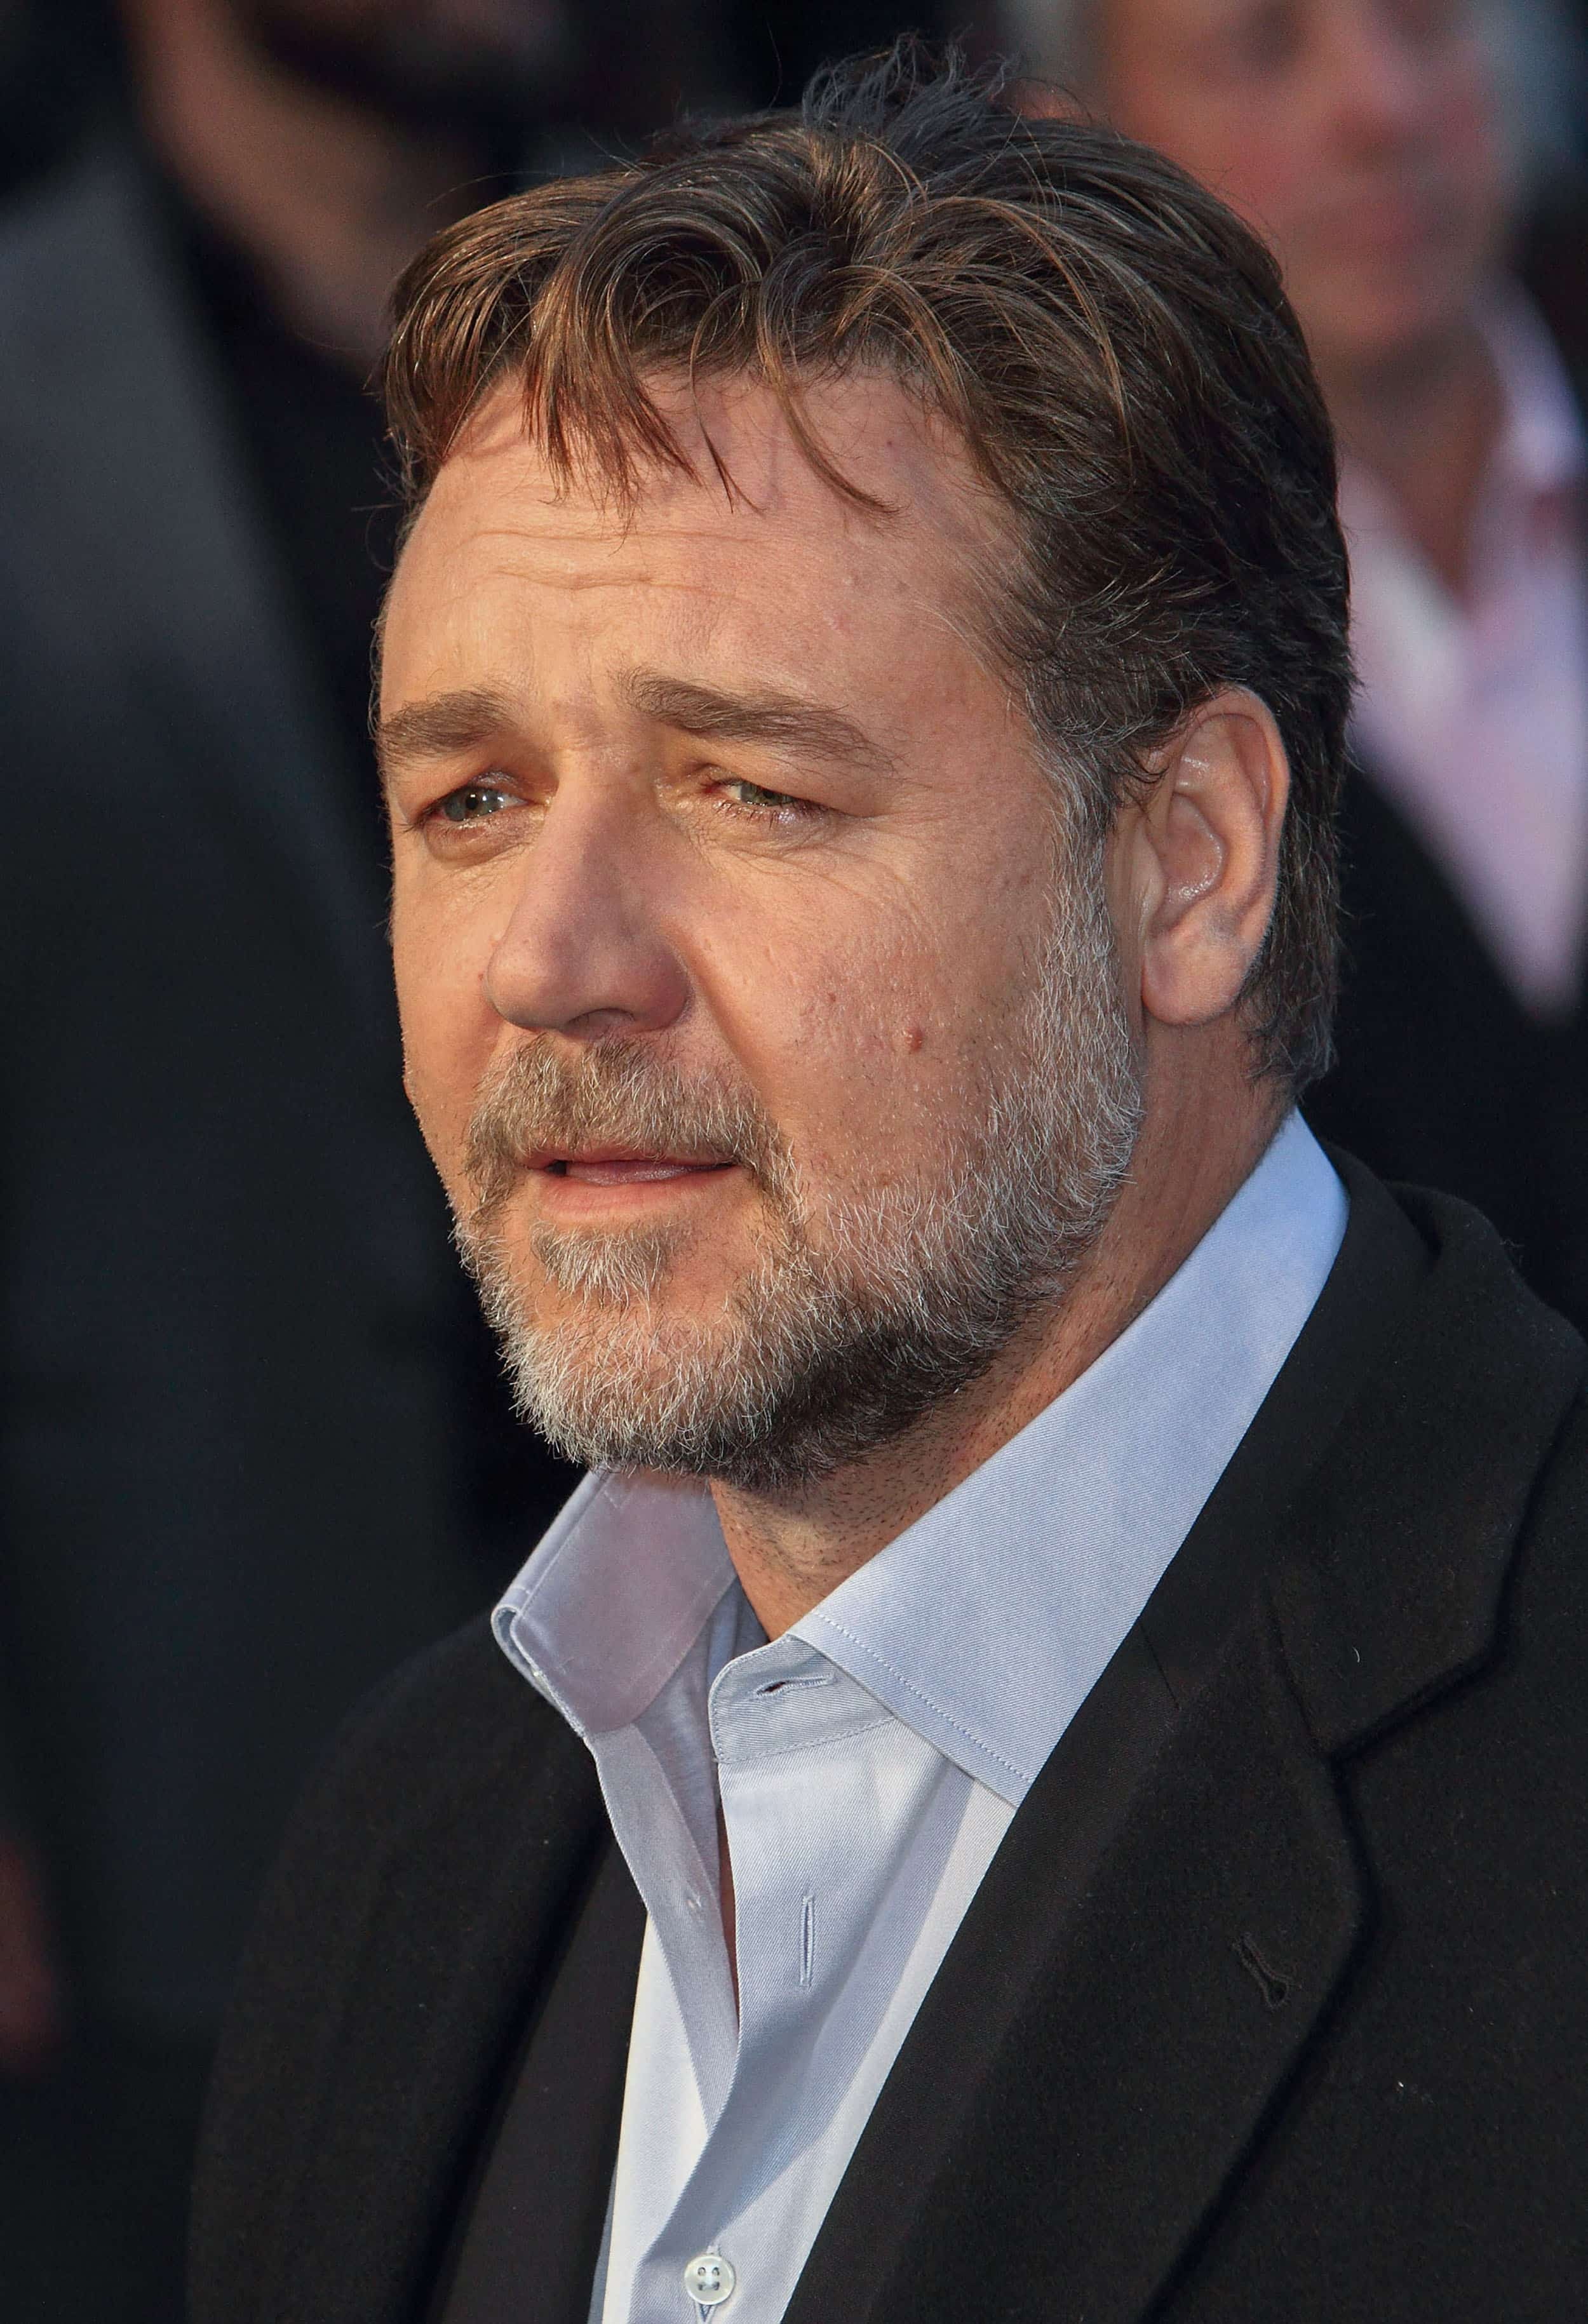 russell crowe danielle spencer geht ihm nicht aus dem kopf loomee tv. Black Bedroom Furniture Sets. Home Design Ideas